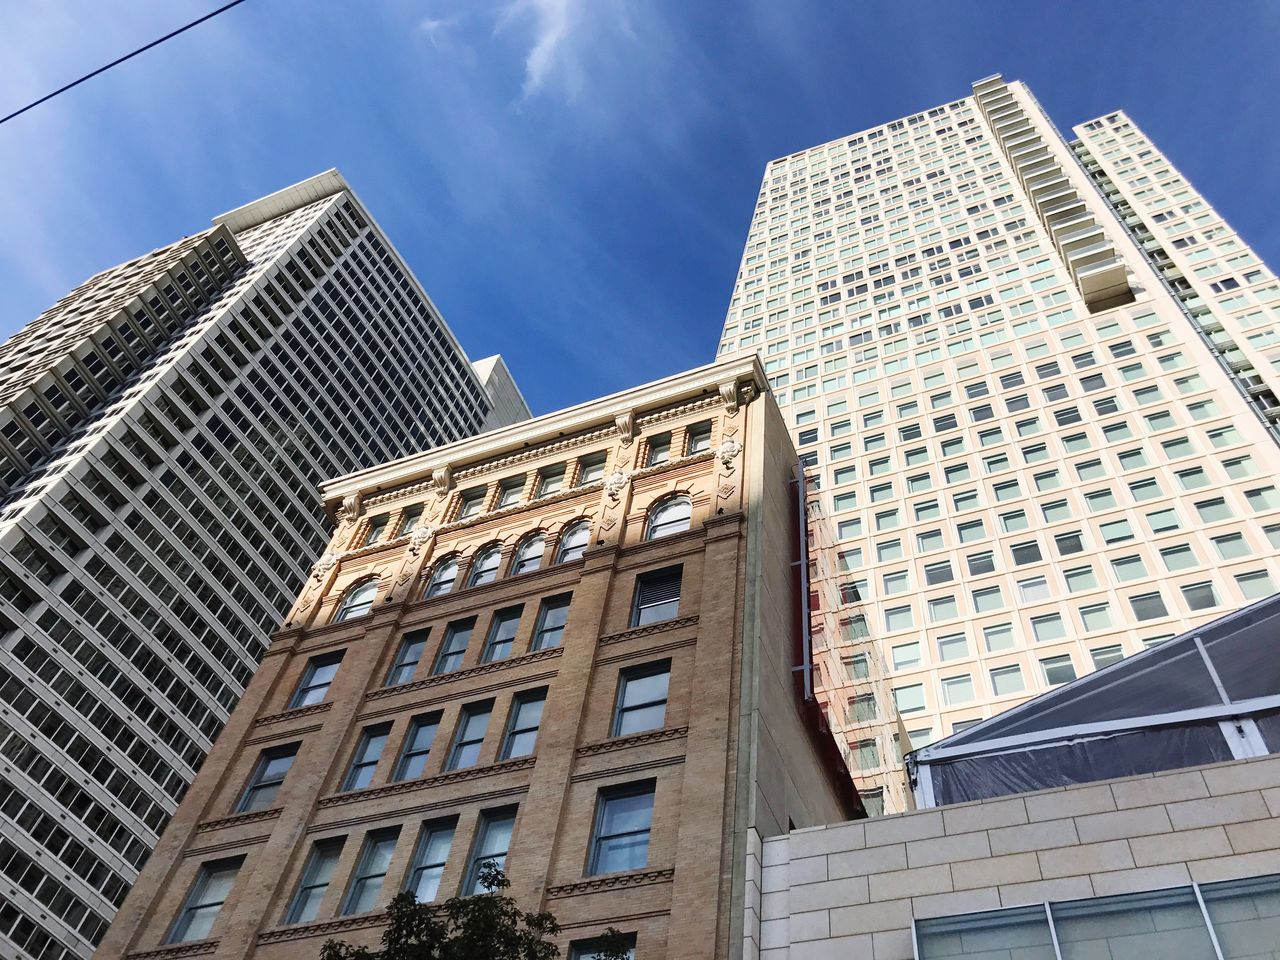 Summer in the city // Building Exterior Architecture Built Structure Low Angle View Skyscraper City Sky Tower Day Outdoors No People Modern